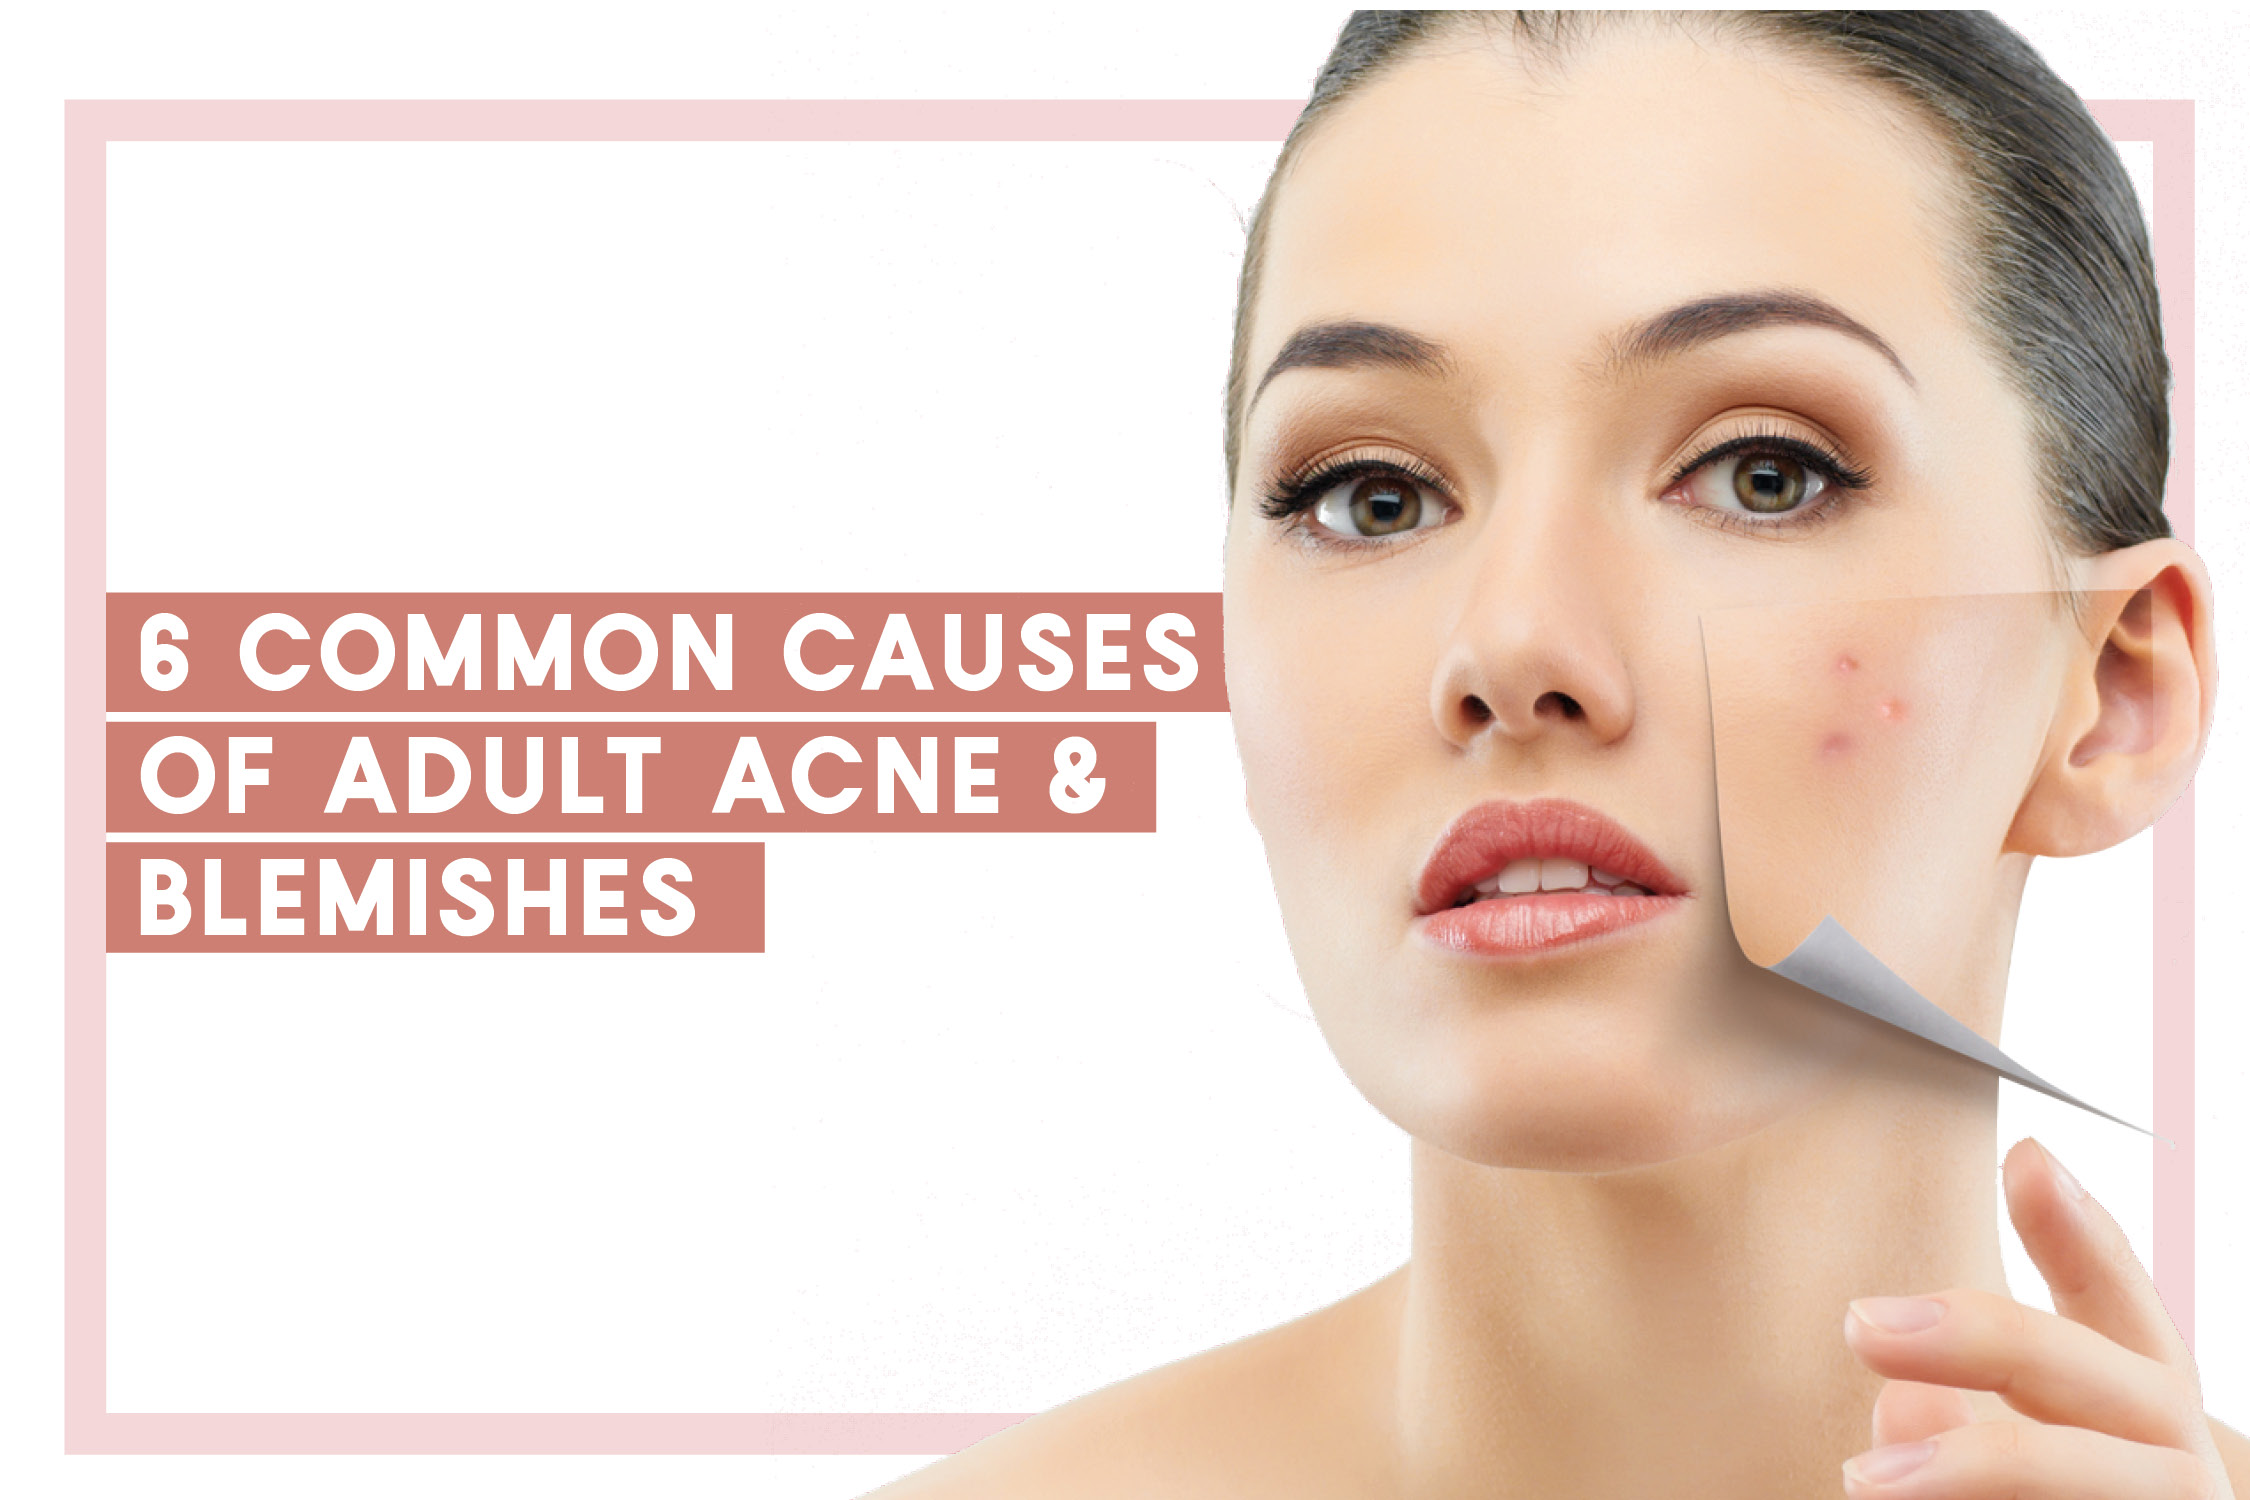 6 Common Causes of Adult Acne & Blemishes